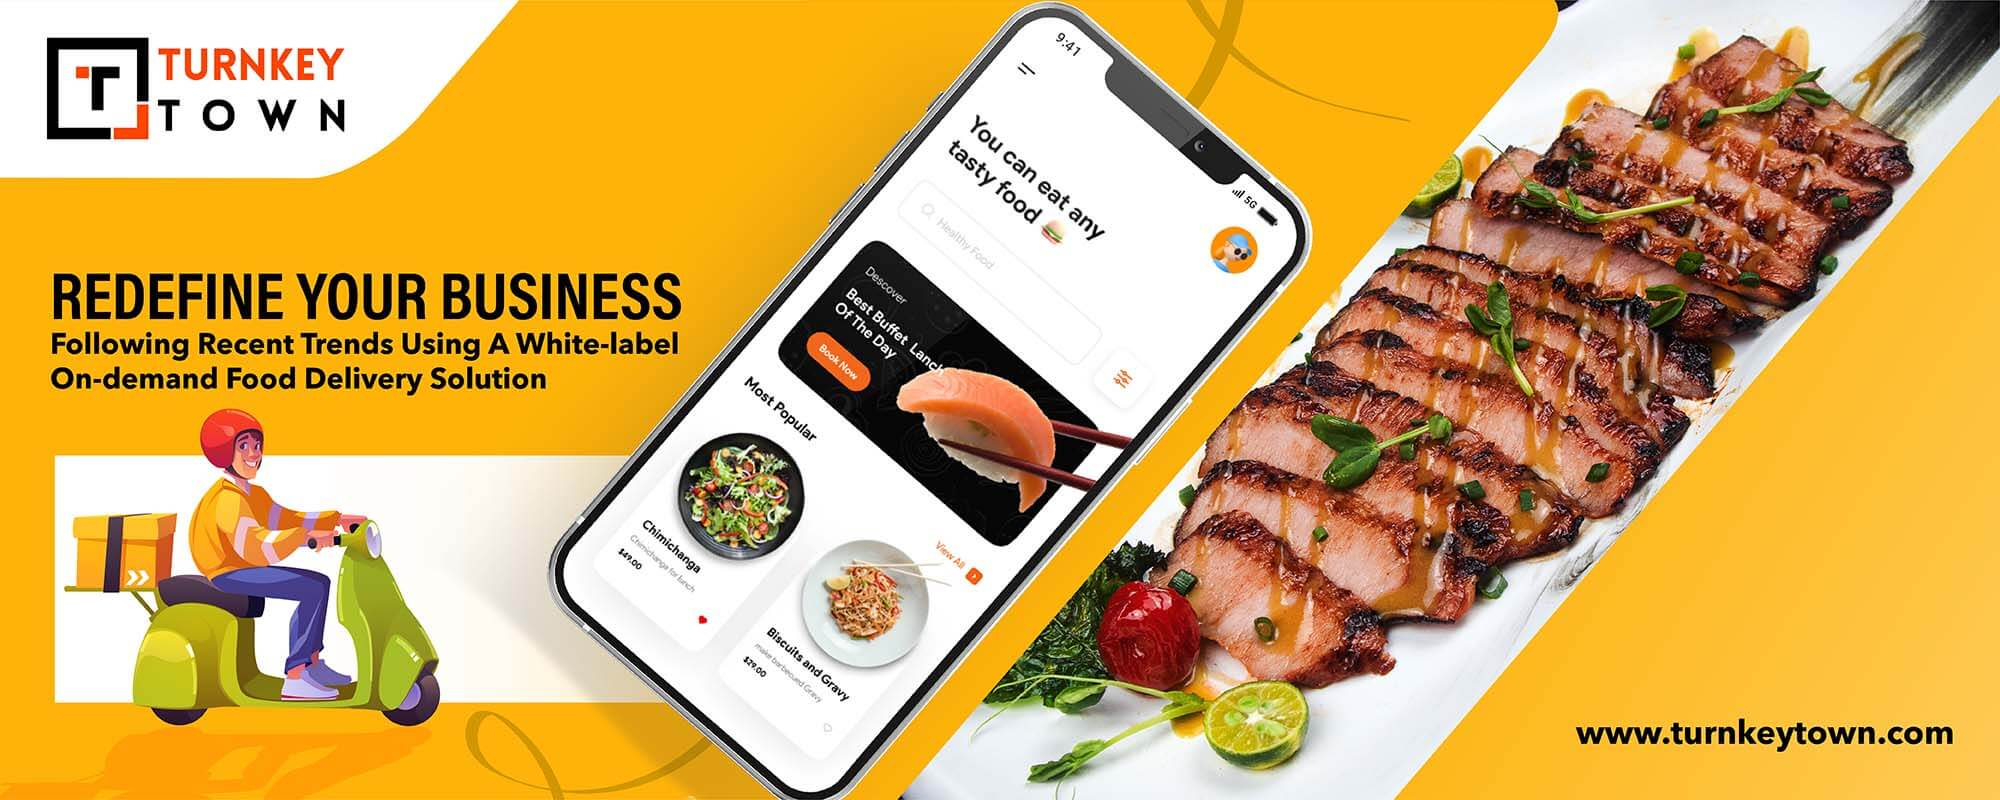 White-Label On-Demand Food Delivery Solution